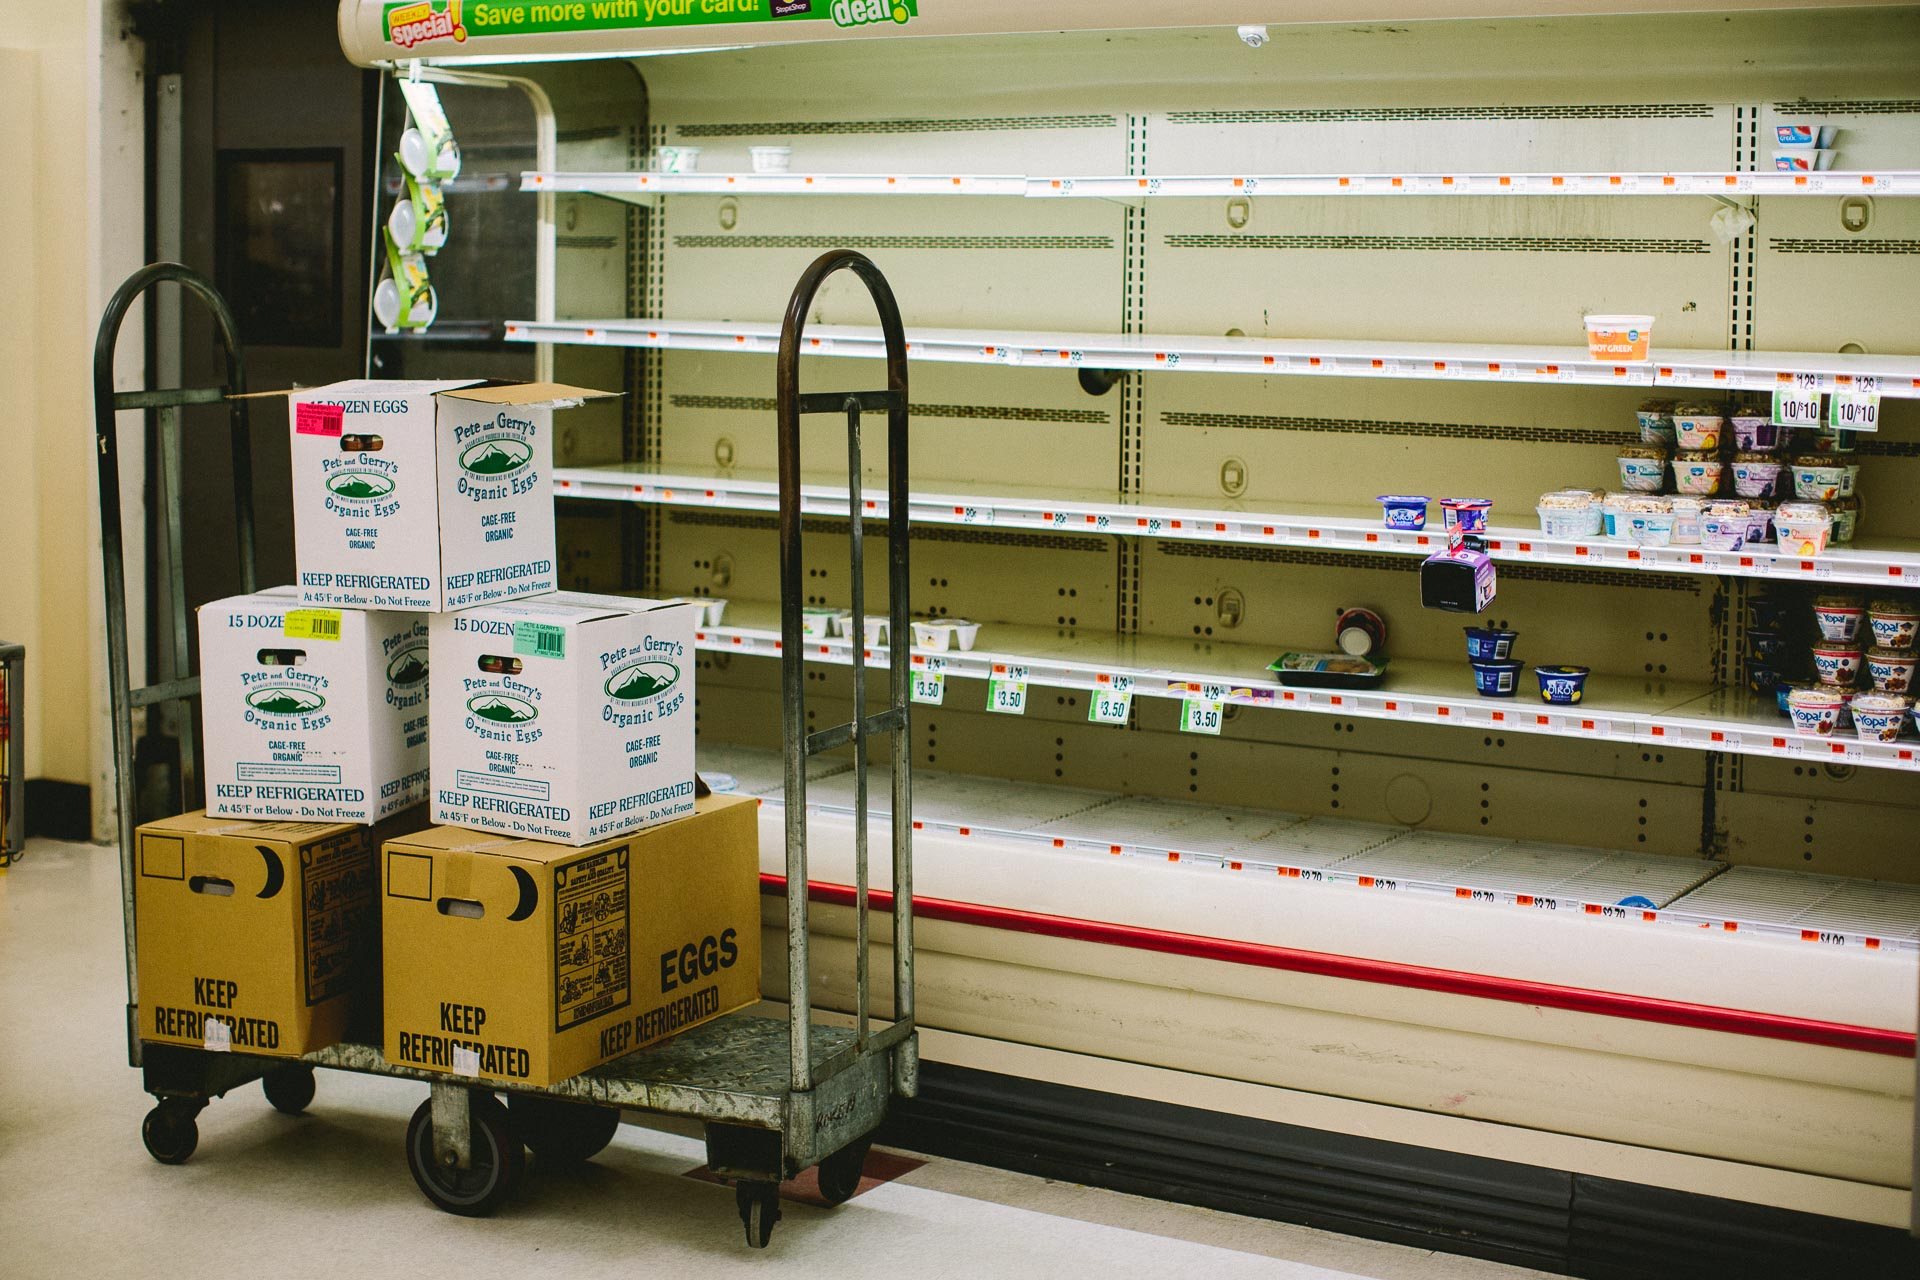 The North Quincy Stop and Shop ahead of Winter Storm Nemo